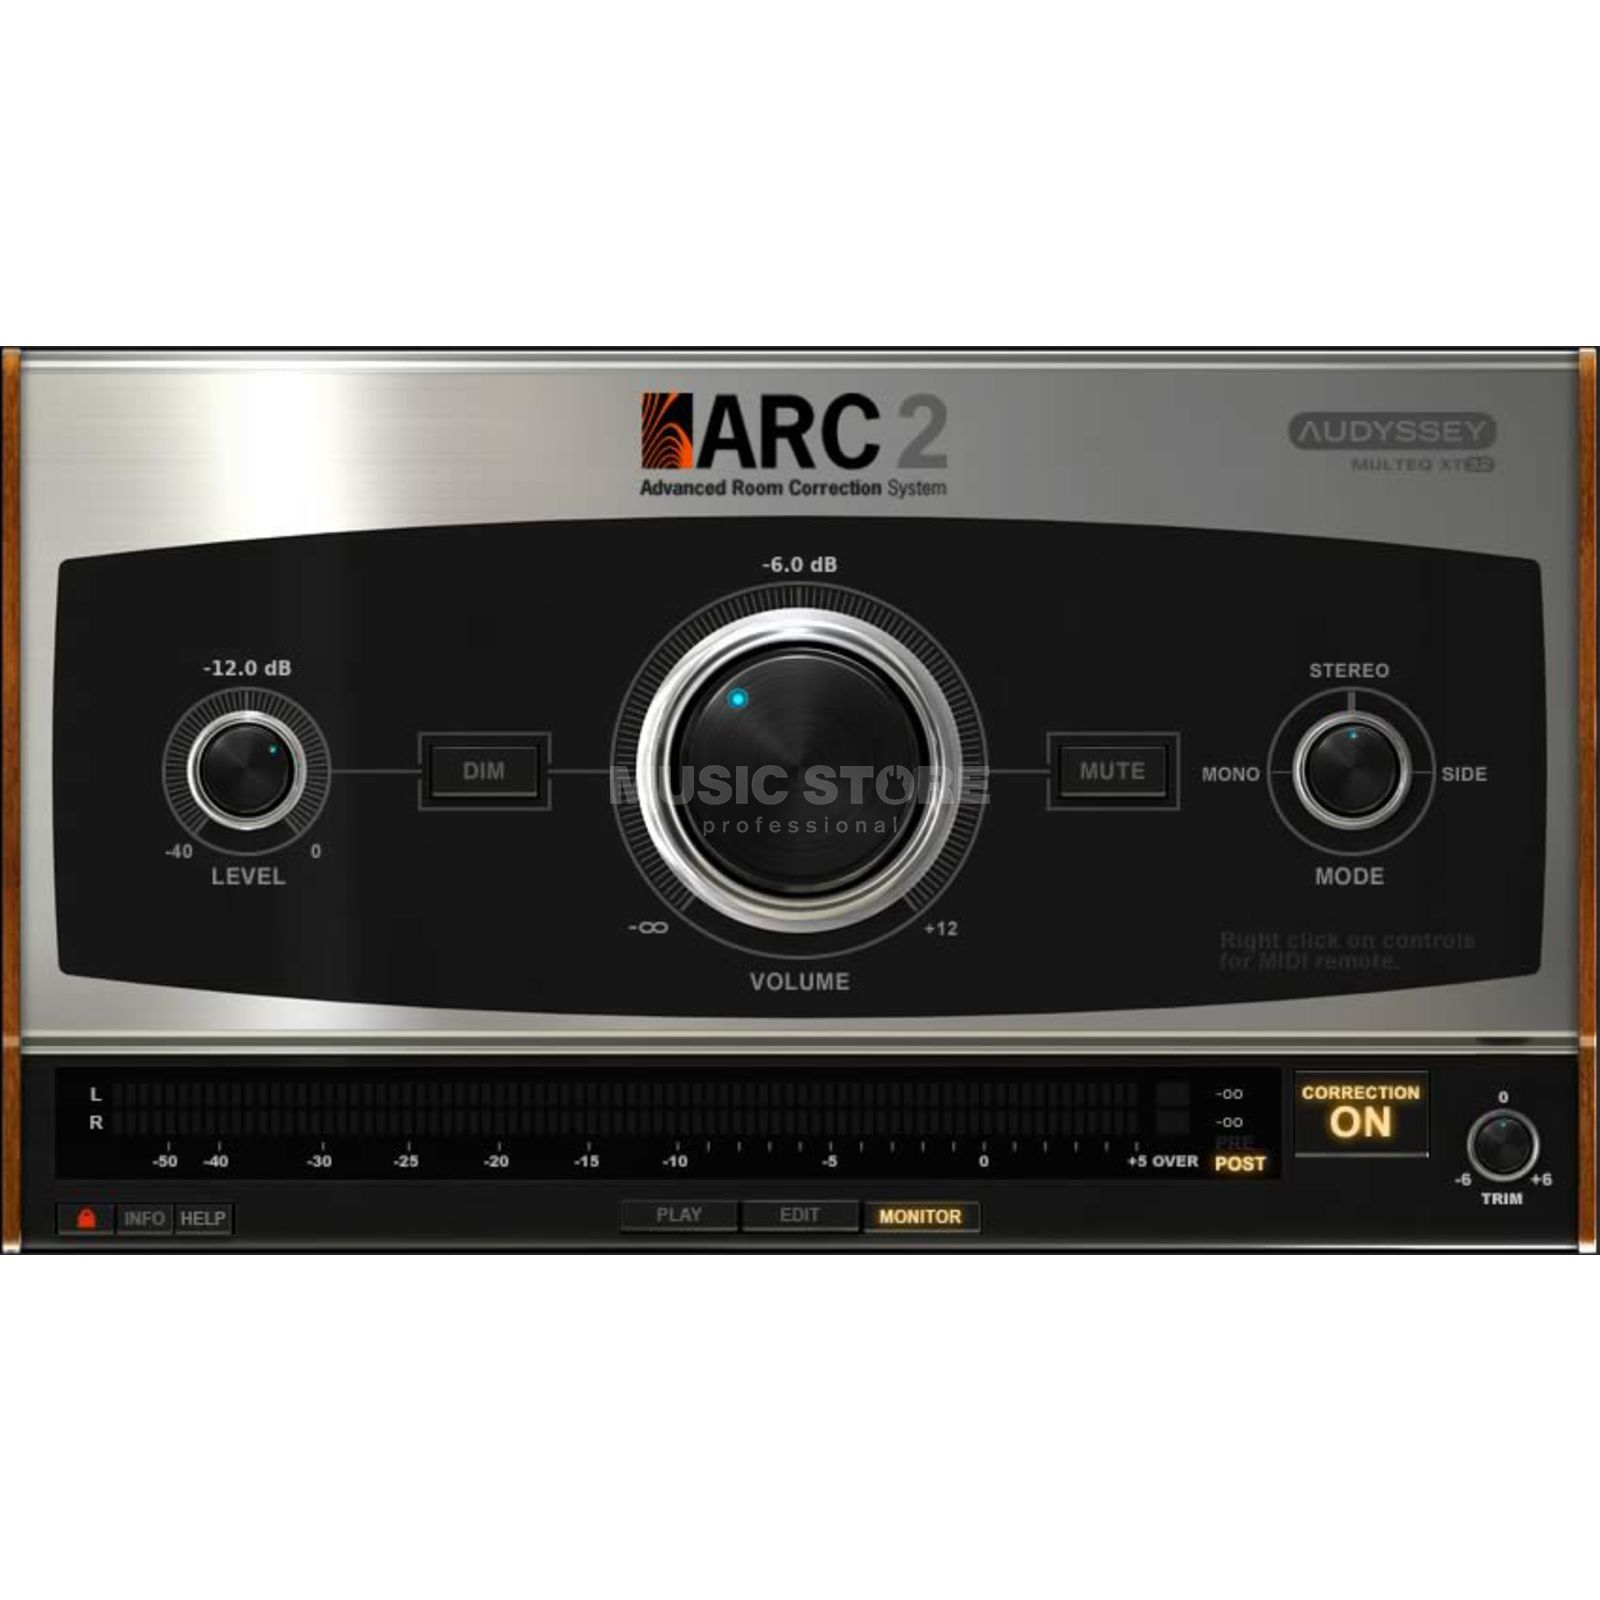 IK Multimedia ARC 2 UPGRADE without Microphone Adv. Room Correction System Produktbillede